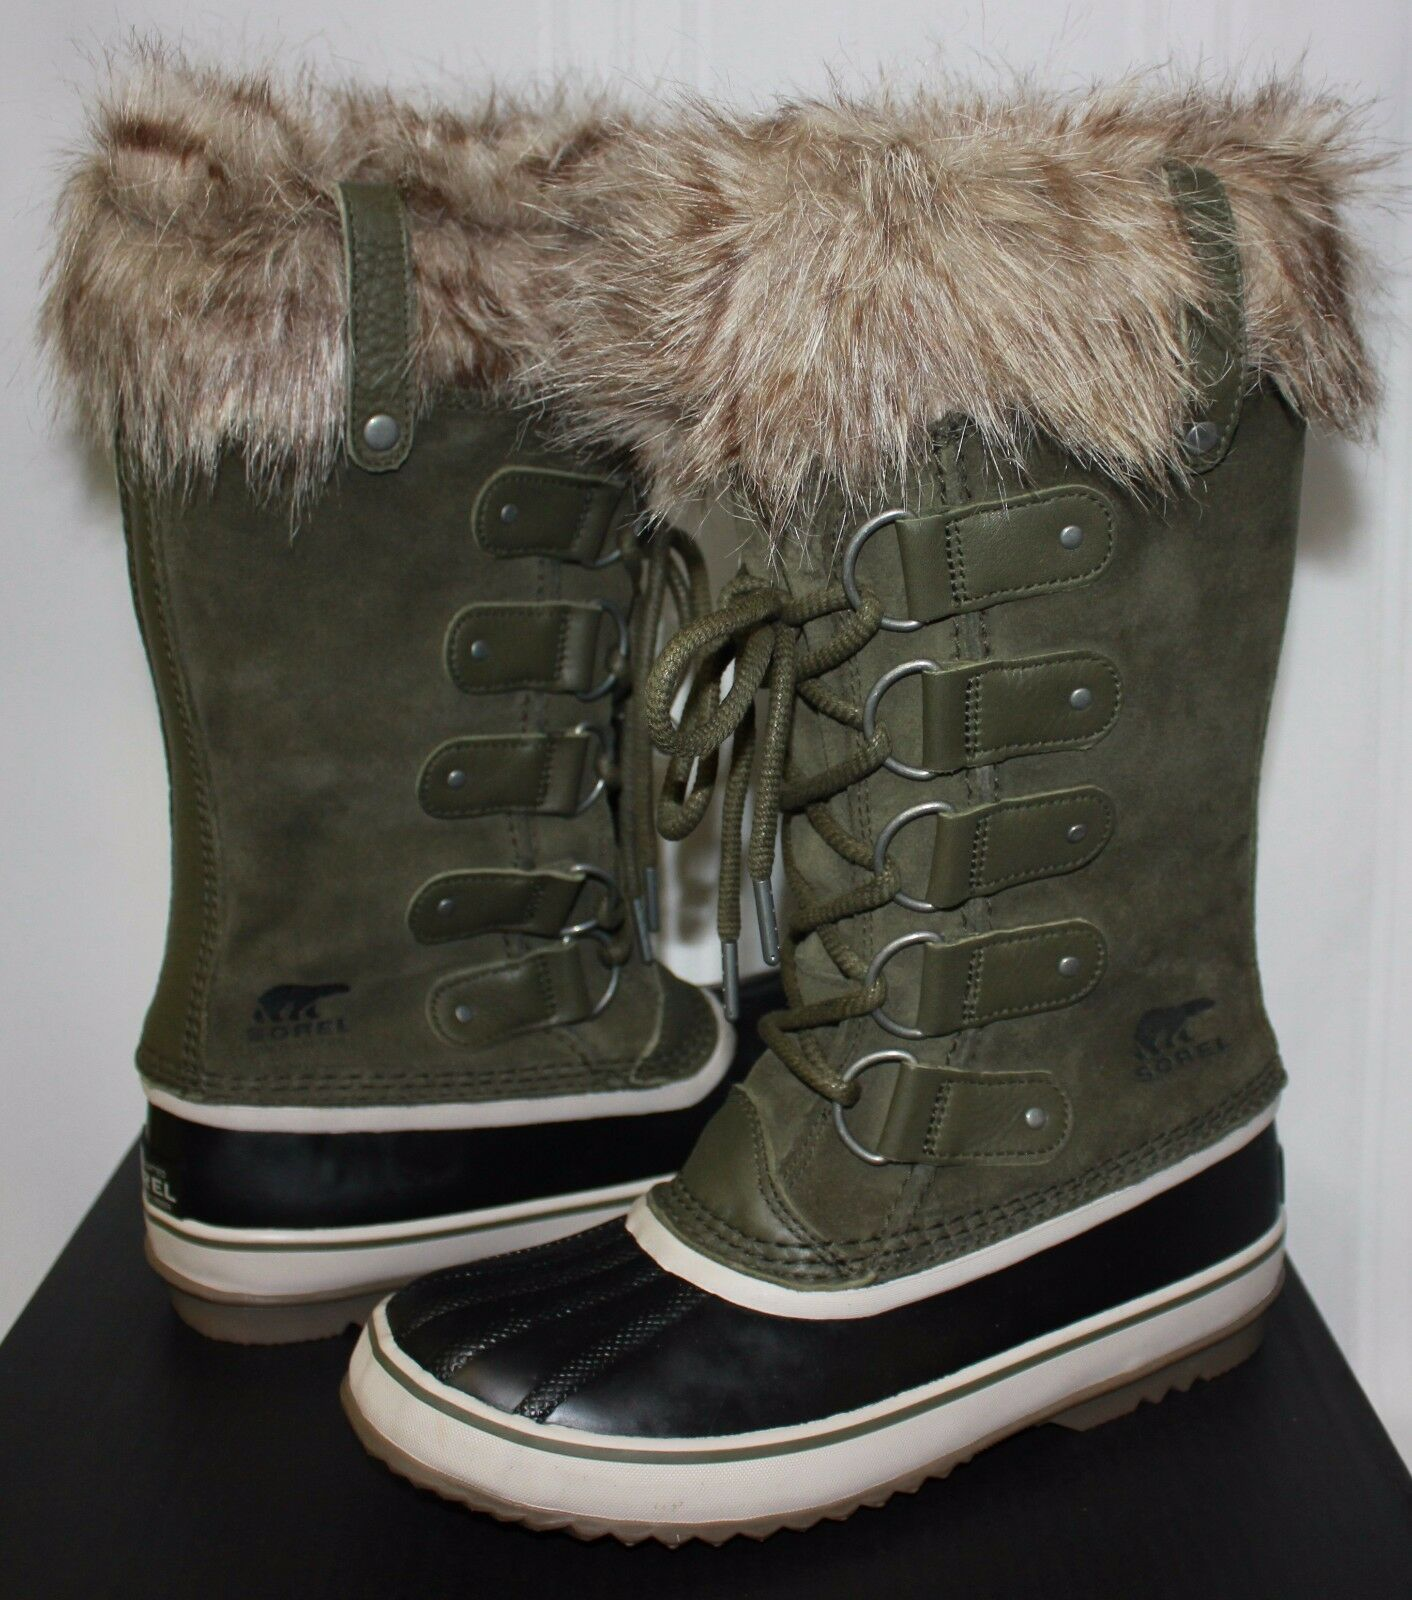 per il commercio all'ingrosso Sorel Donna  Joan of Arctic Arctic Arctic waterproof stivali verde Nori   Stone New With Box   in linea